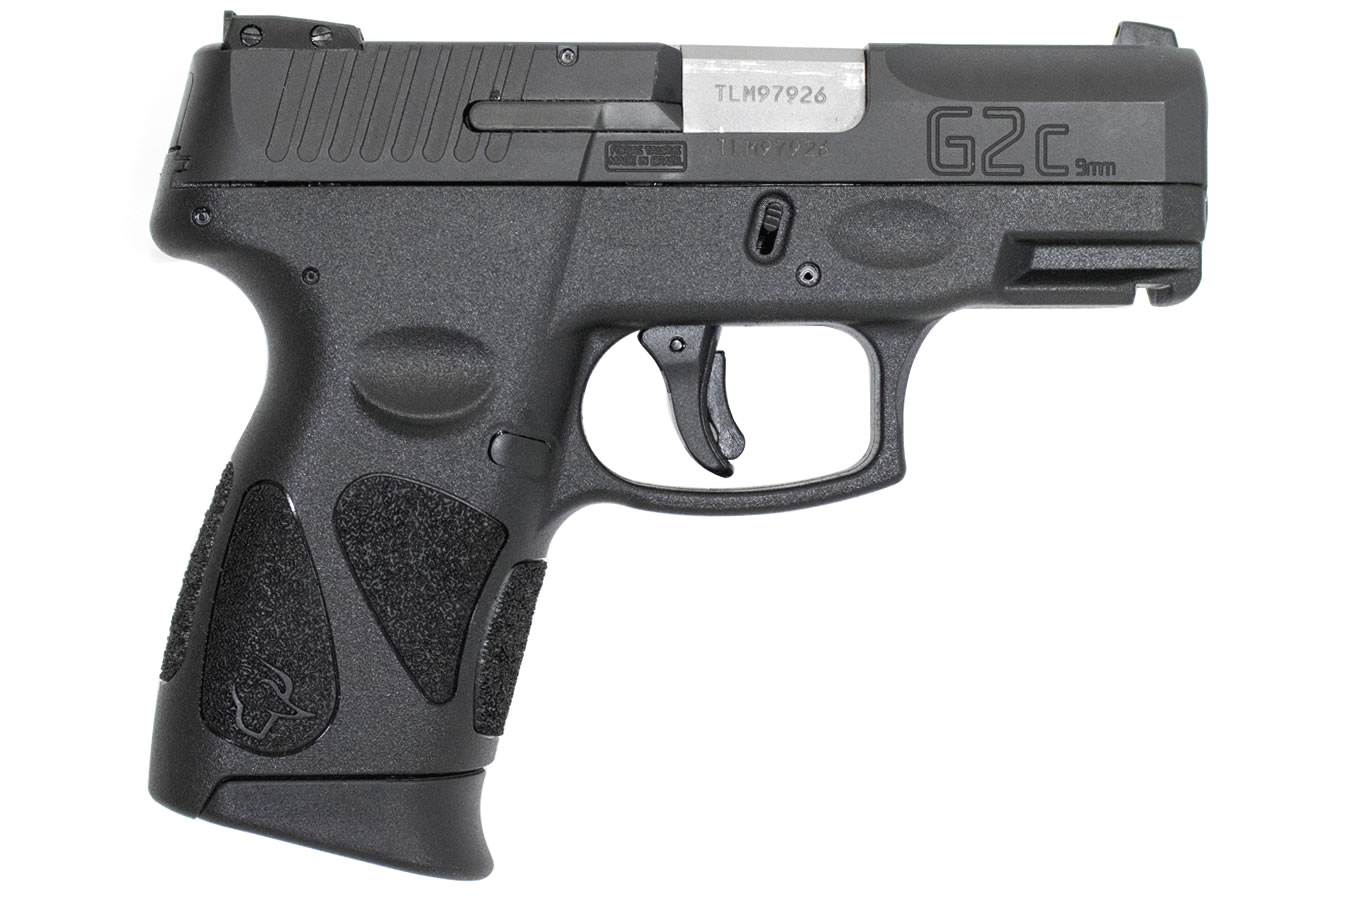 No. 4 Best Selling: TAURUS G2C 9MM SUB-COMPACT PISTOL